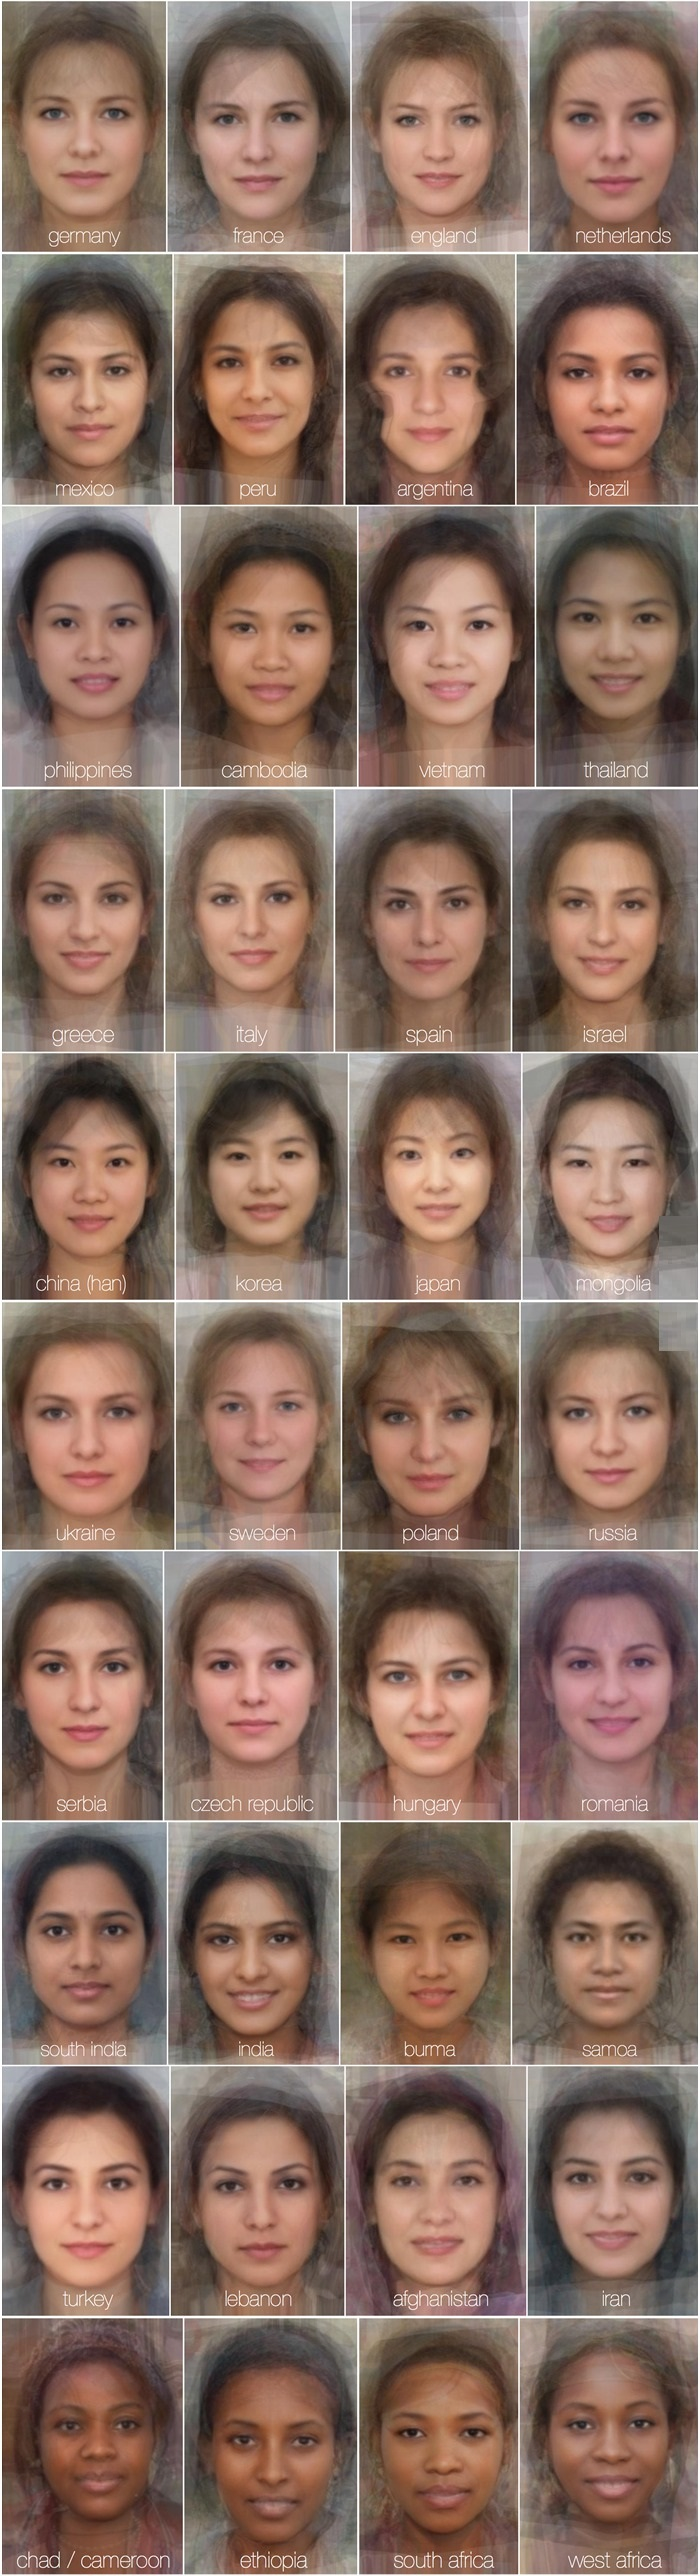 Women Faces from around the world